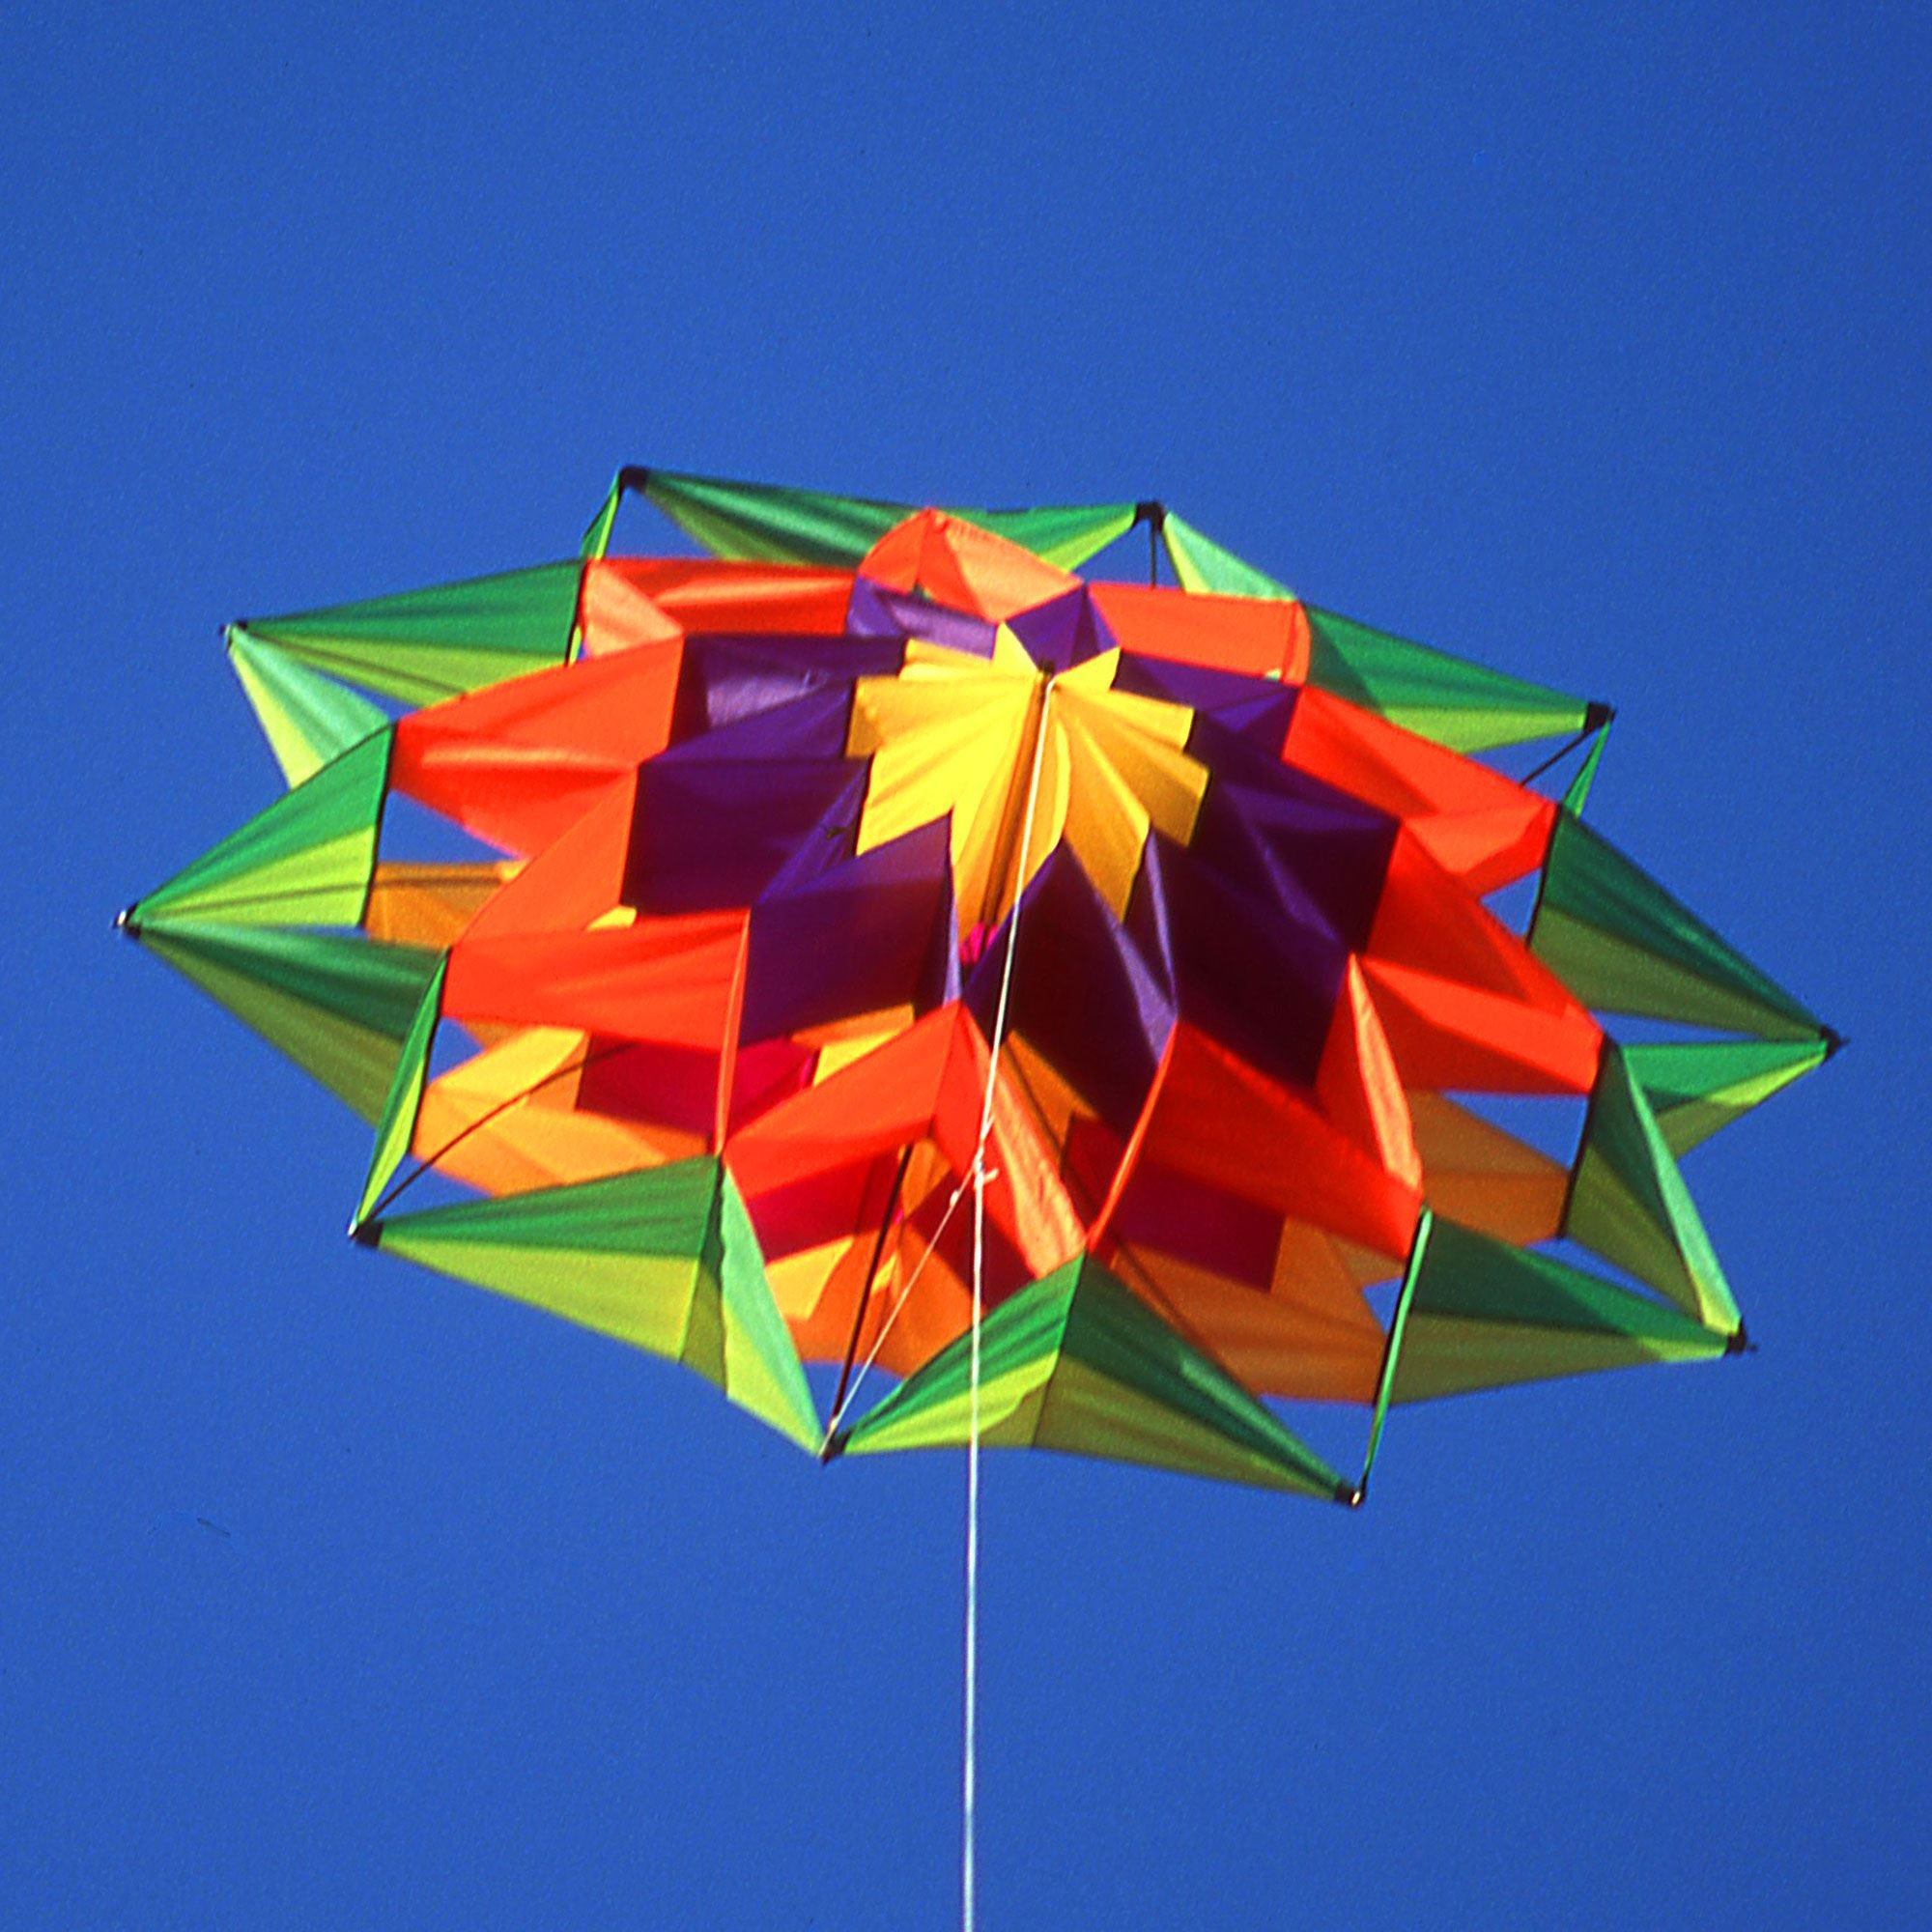 Lotus Single Line Box Kite by Pacific Quest (Image #1)